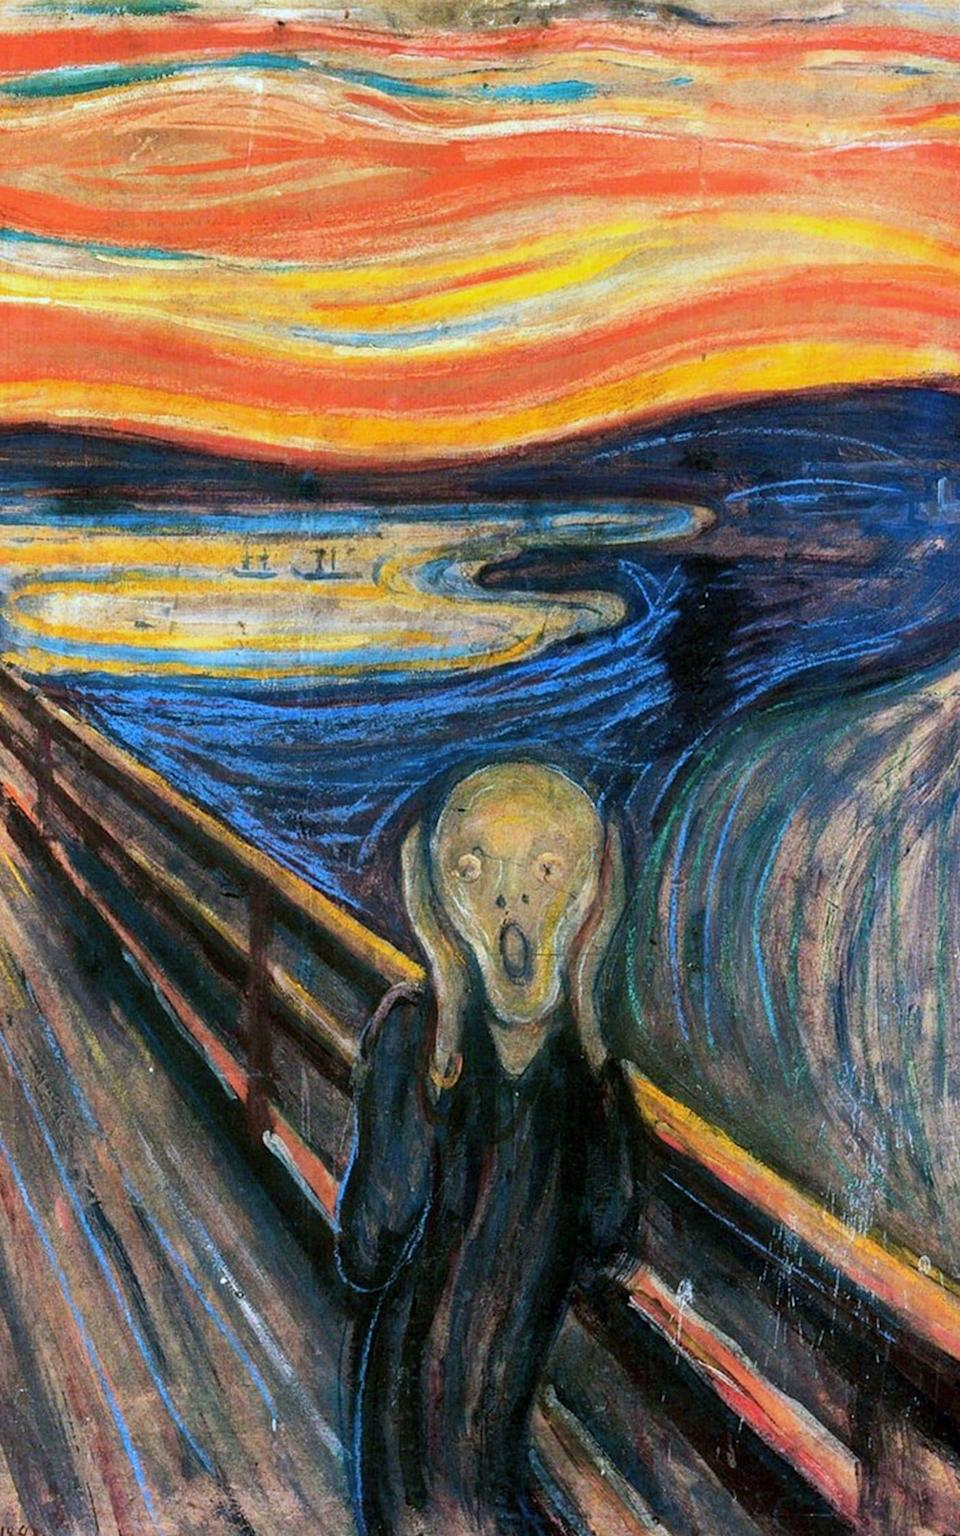 The earliest version of The Scream, plus 'graffiti', by Edvard Munch - Getty Images Contributor